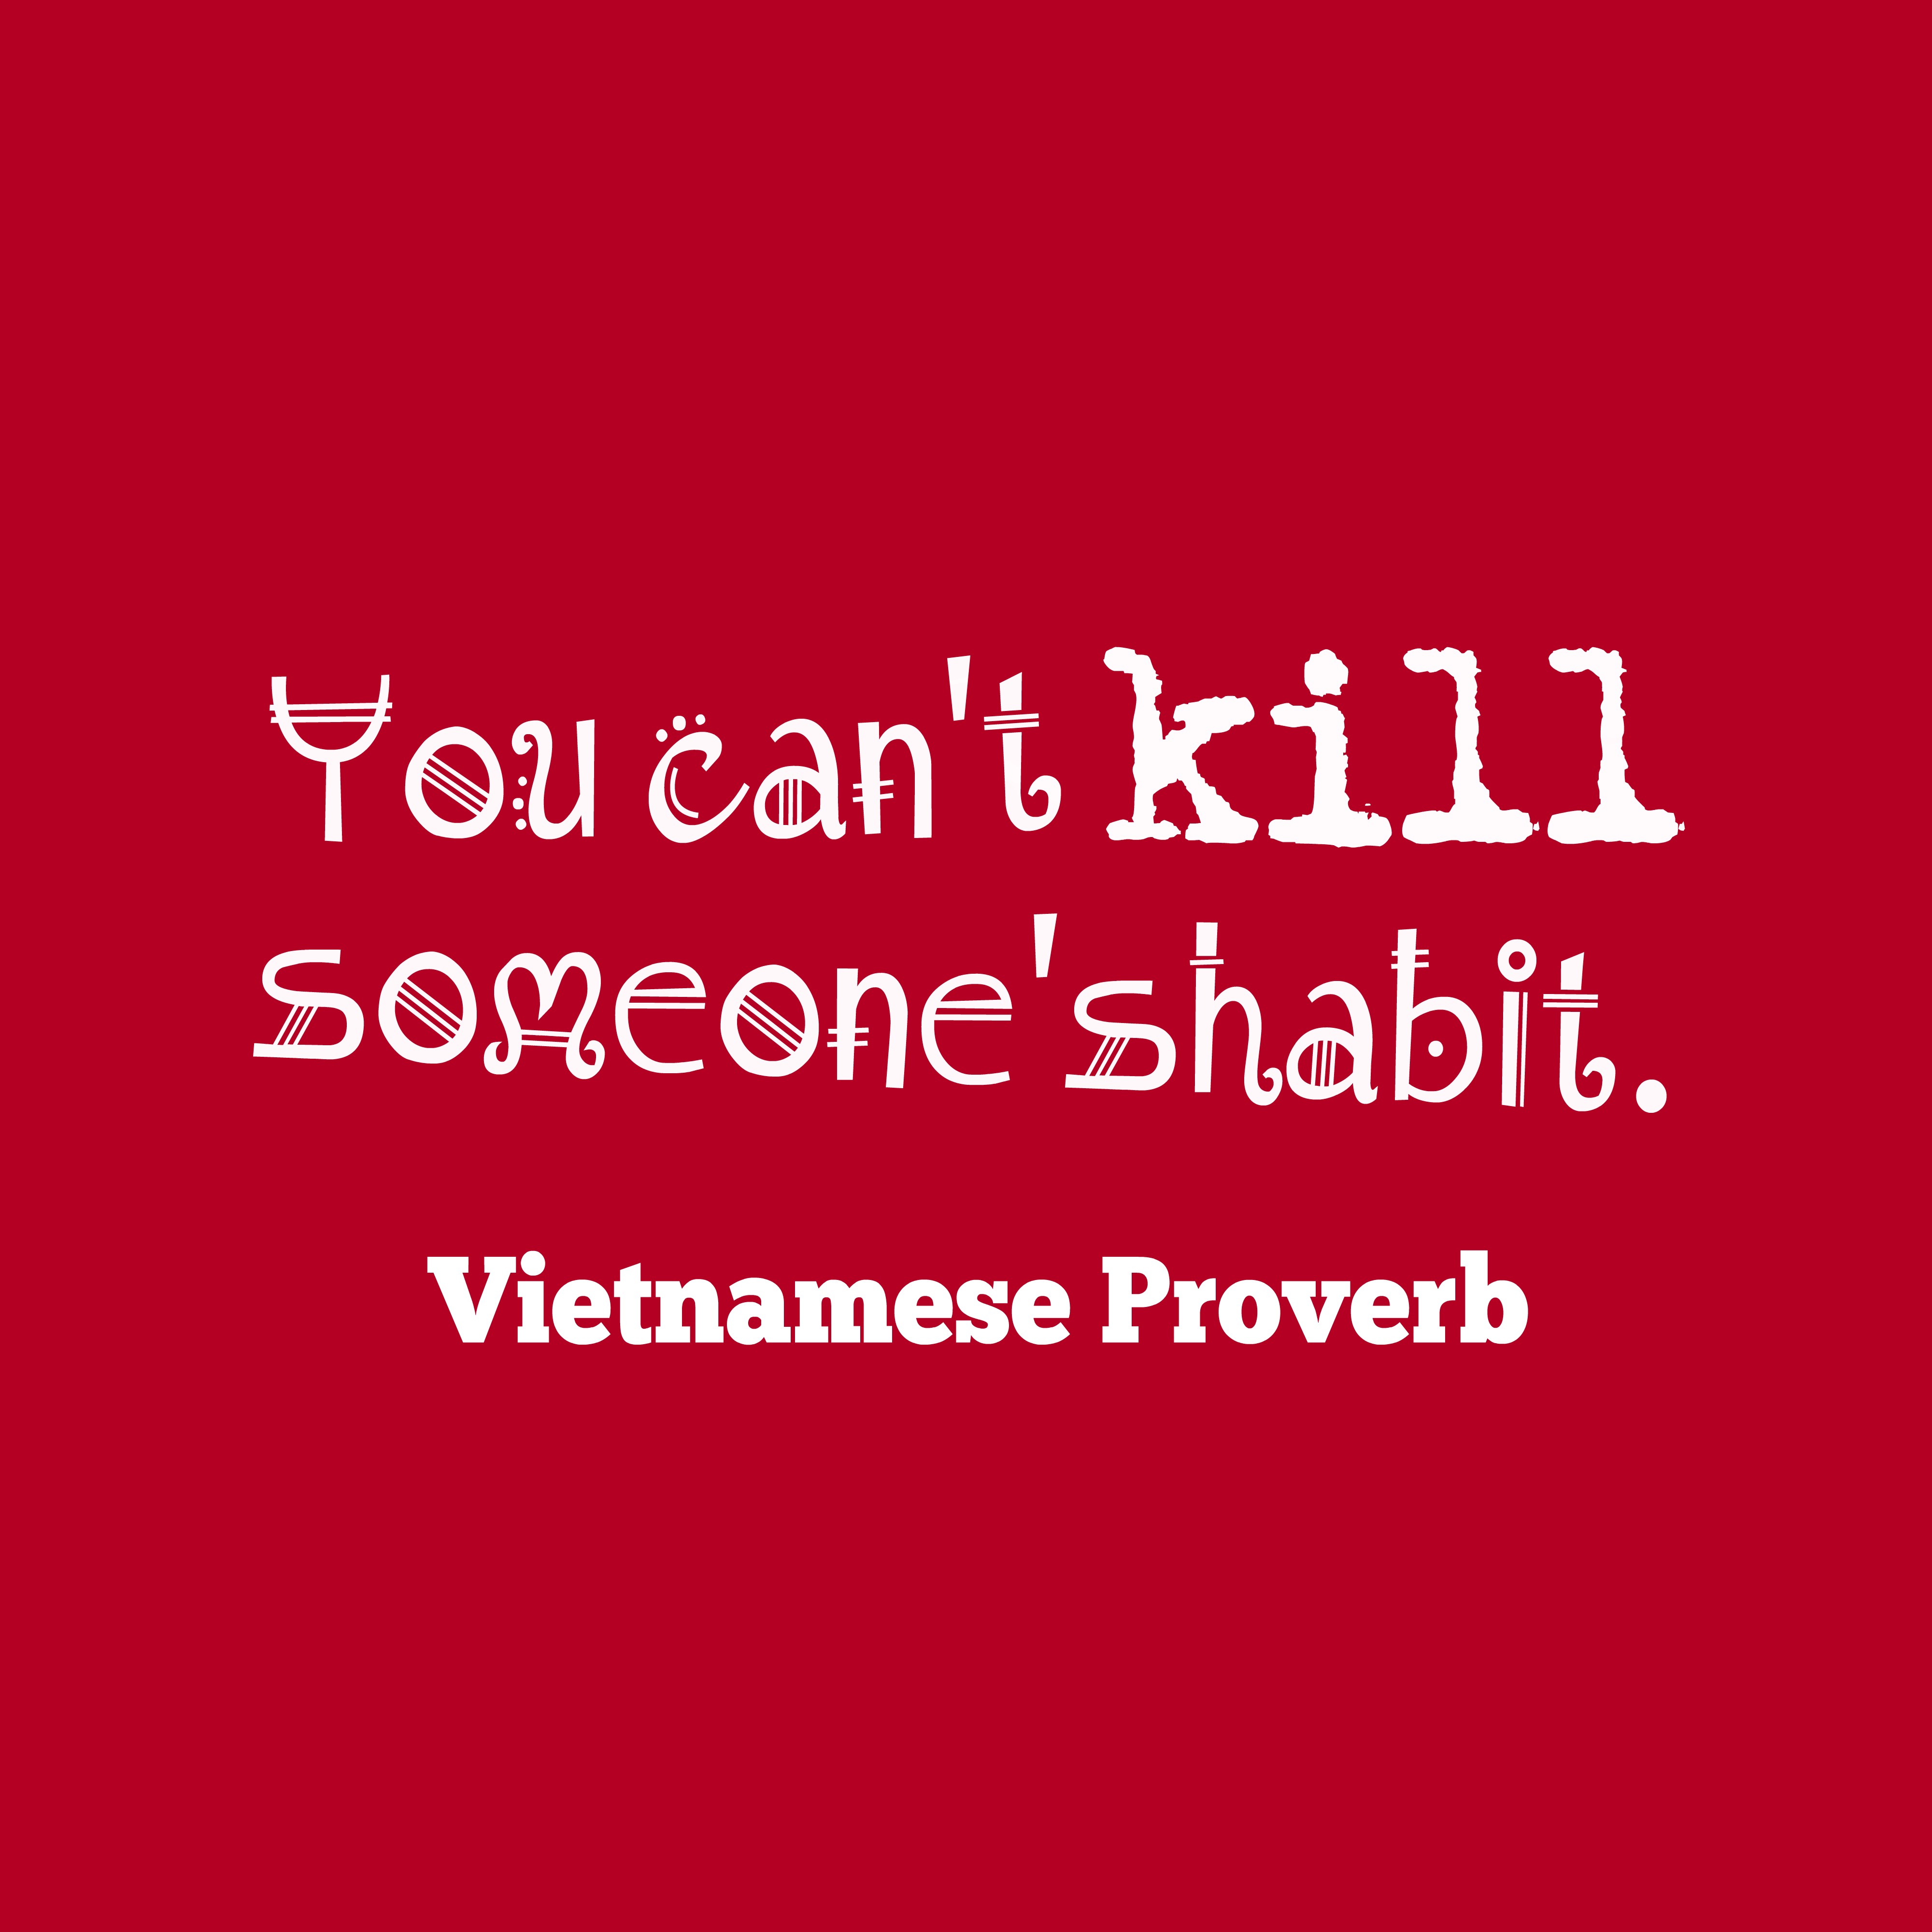 Quotes image of You can't kill someone'shabit.